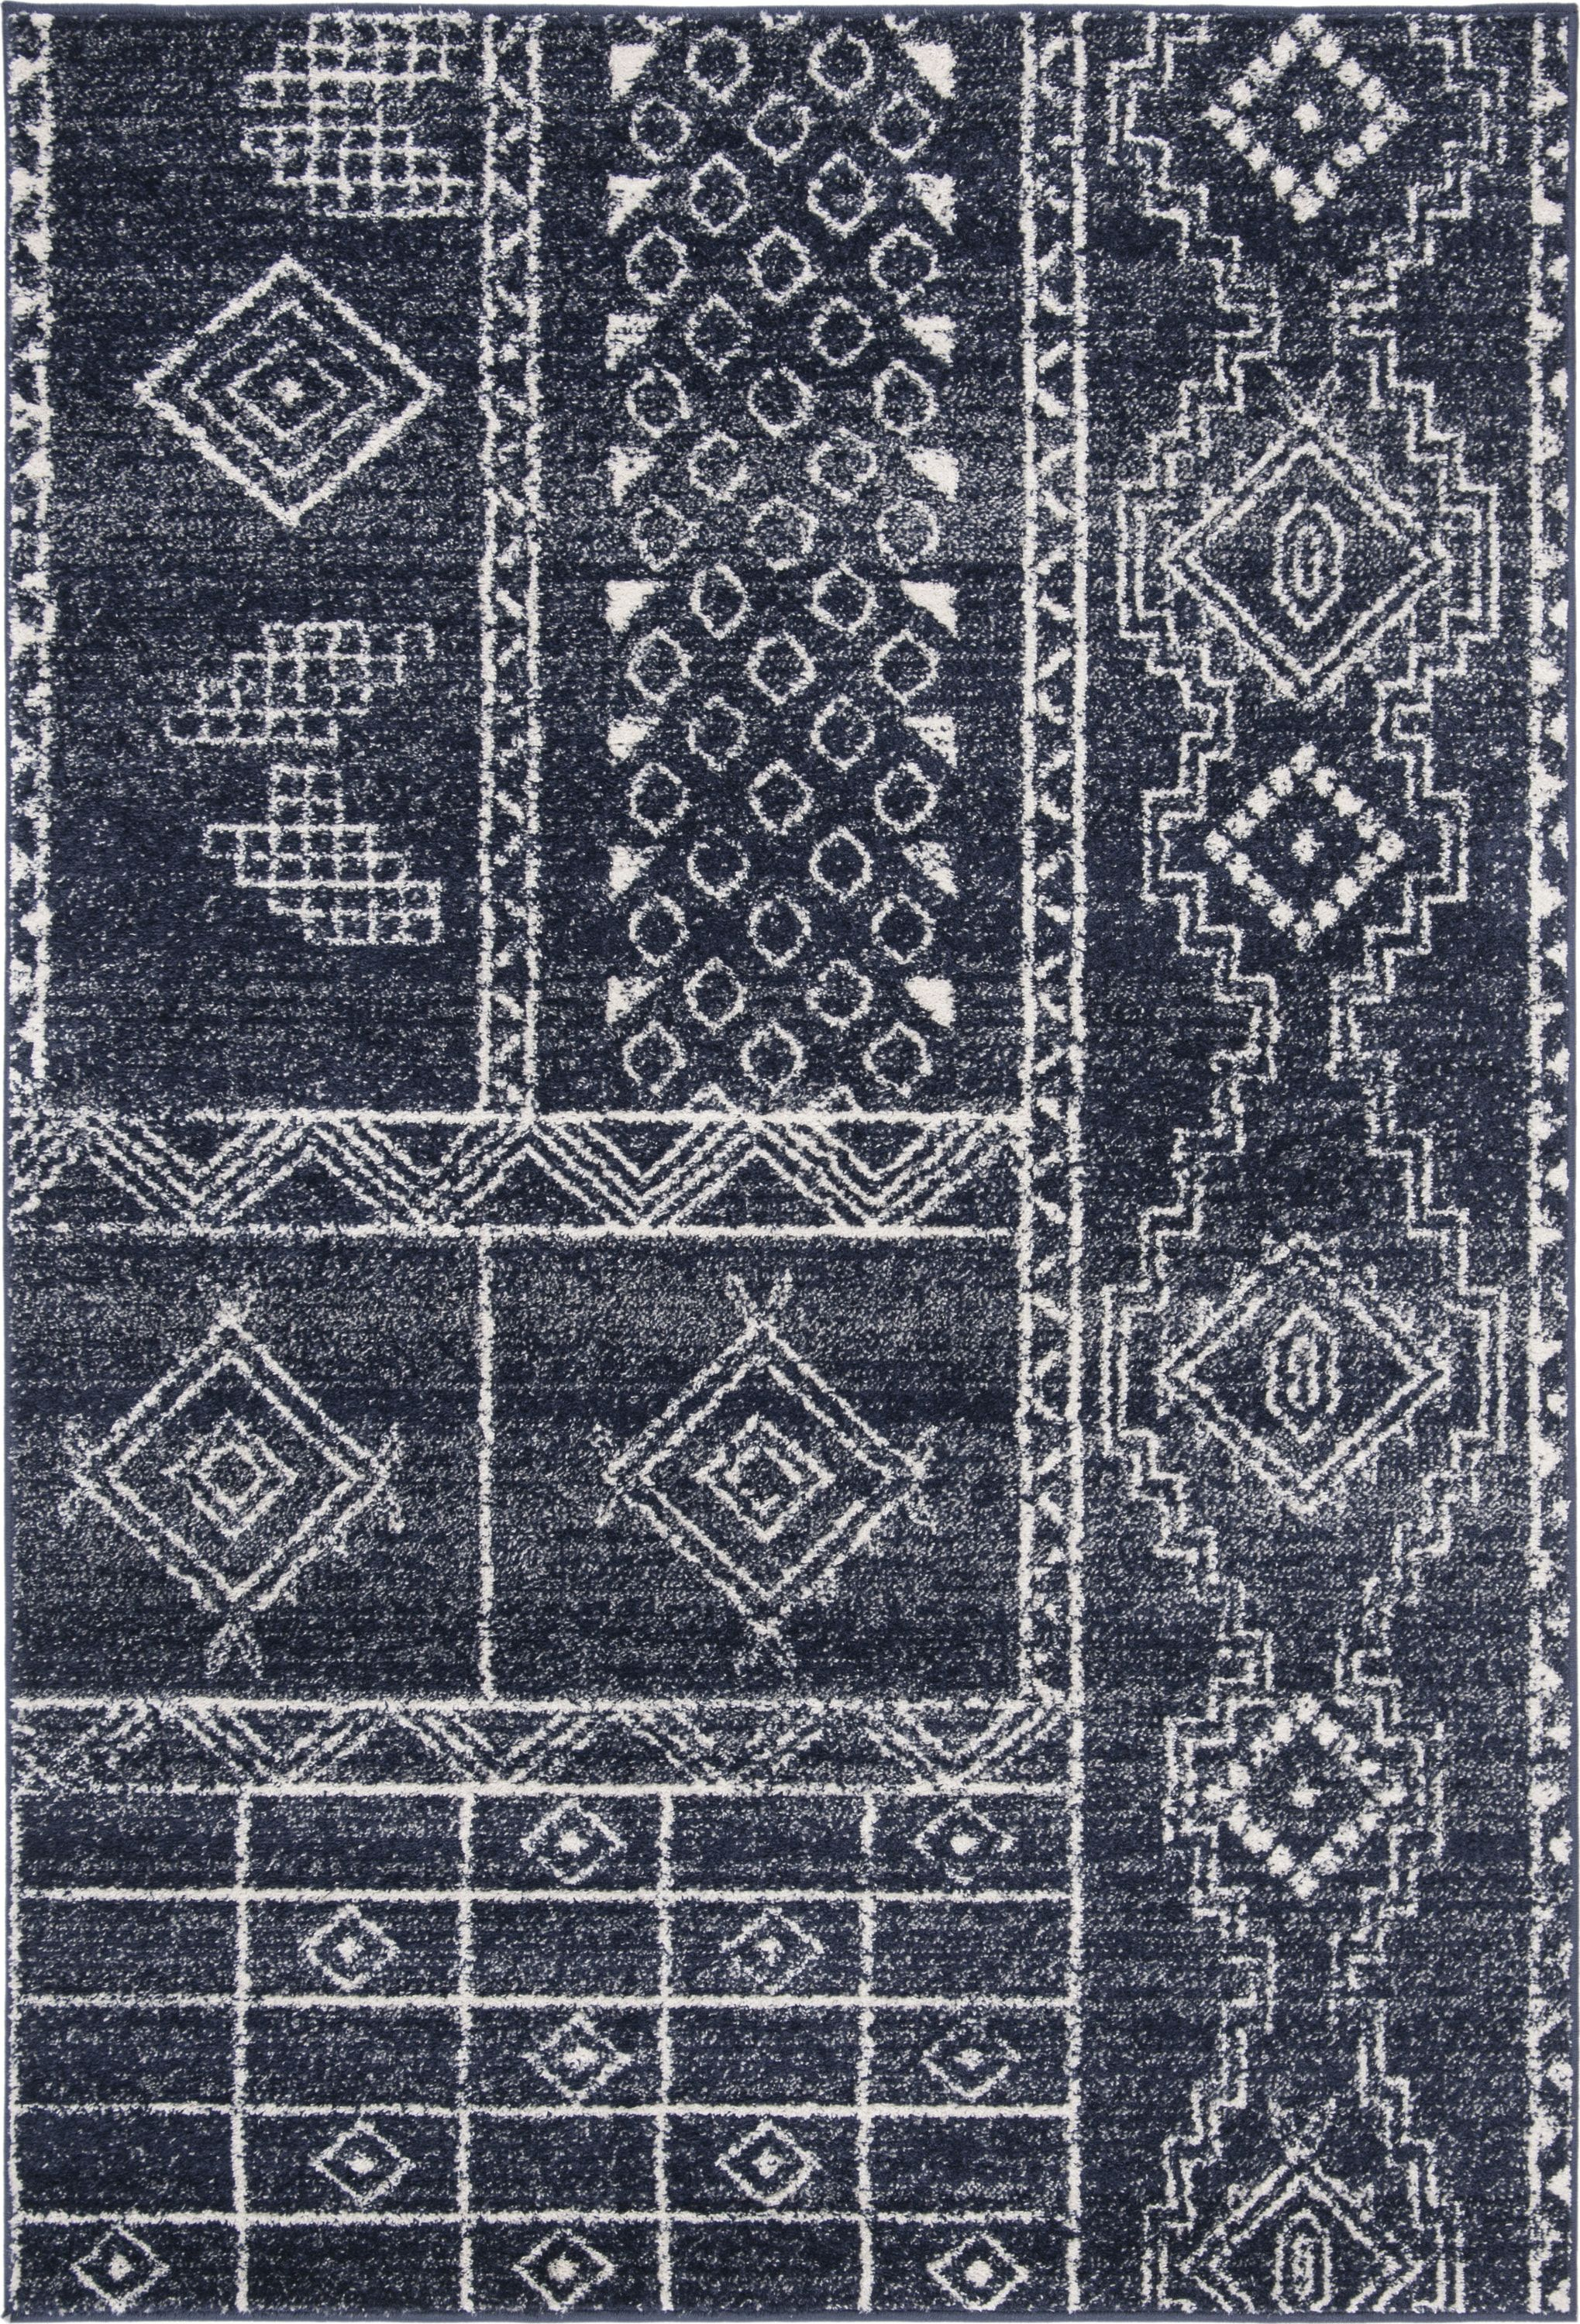 Adr206n Rug Color Navy Silver Size 6 Square Area Rugs Rugs Colorful Rugs